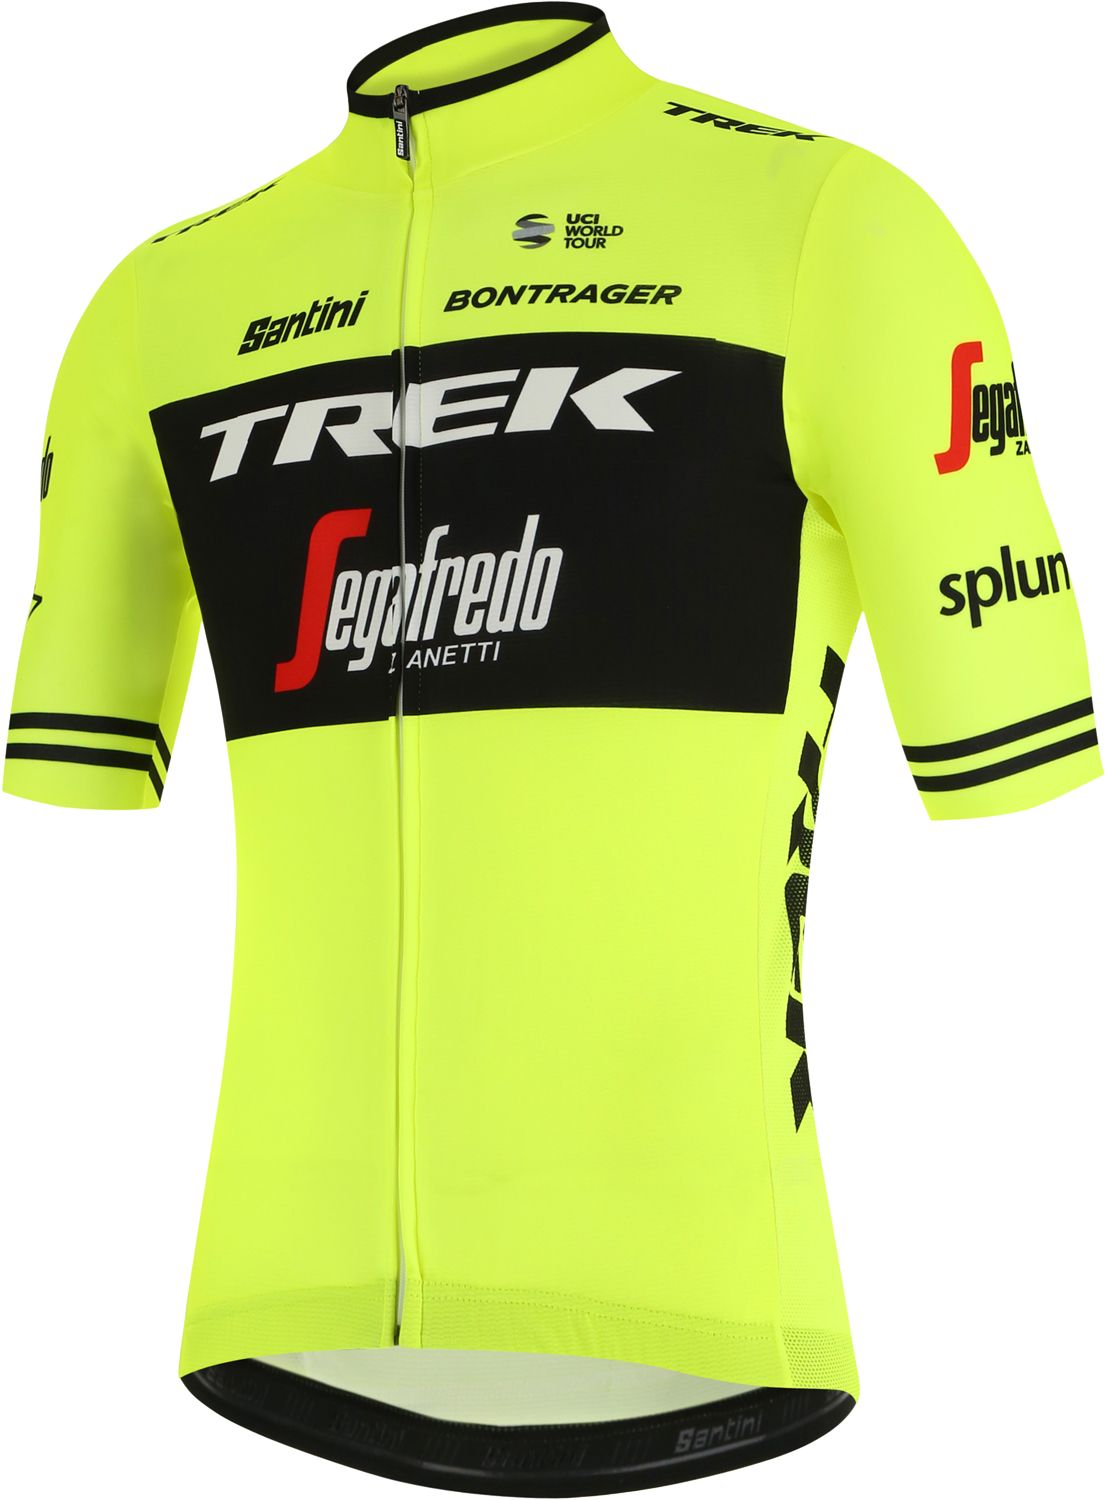 ... 2019 training edition short sleeve cycling jersey (long zip) - Santini.  Previous 5e257c46e